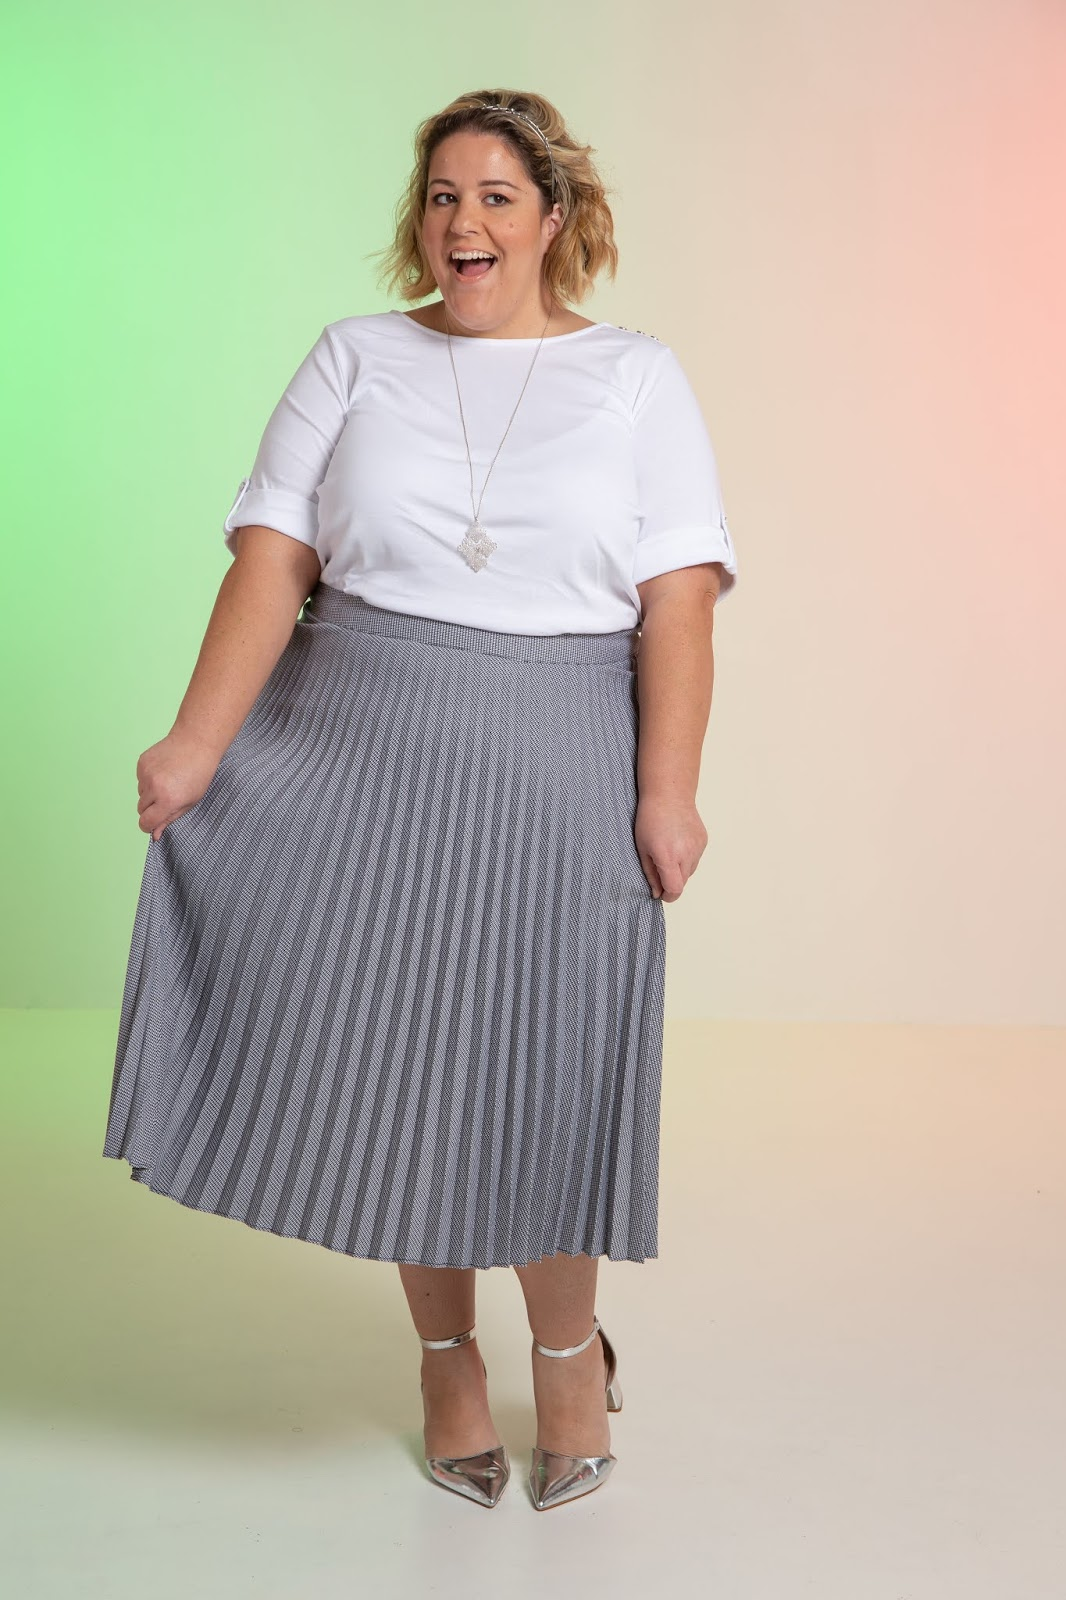 6fdb9f48439 Rule  Never don t buy the pleated skirt. It s a purchase you can NEVER  regret. Honestly